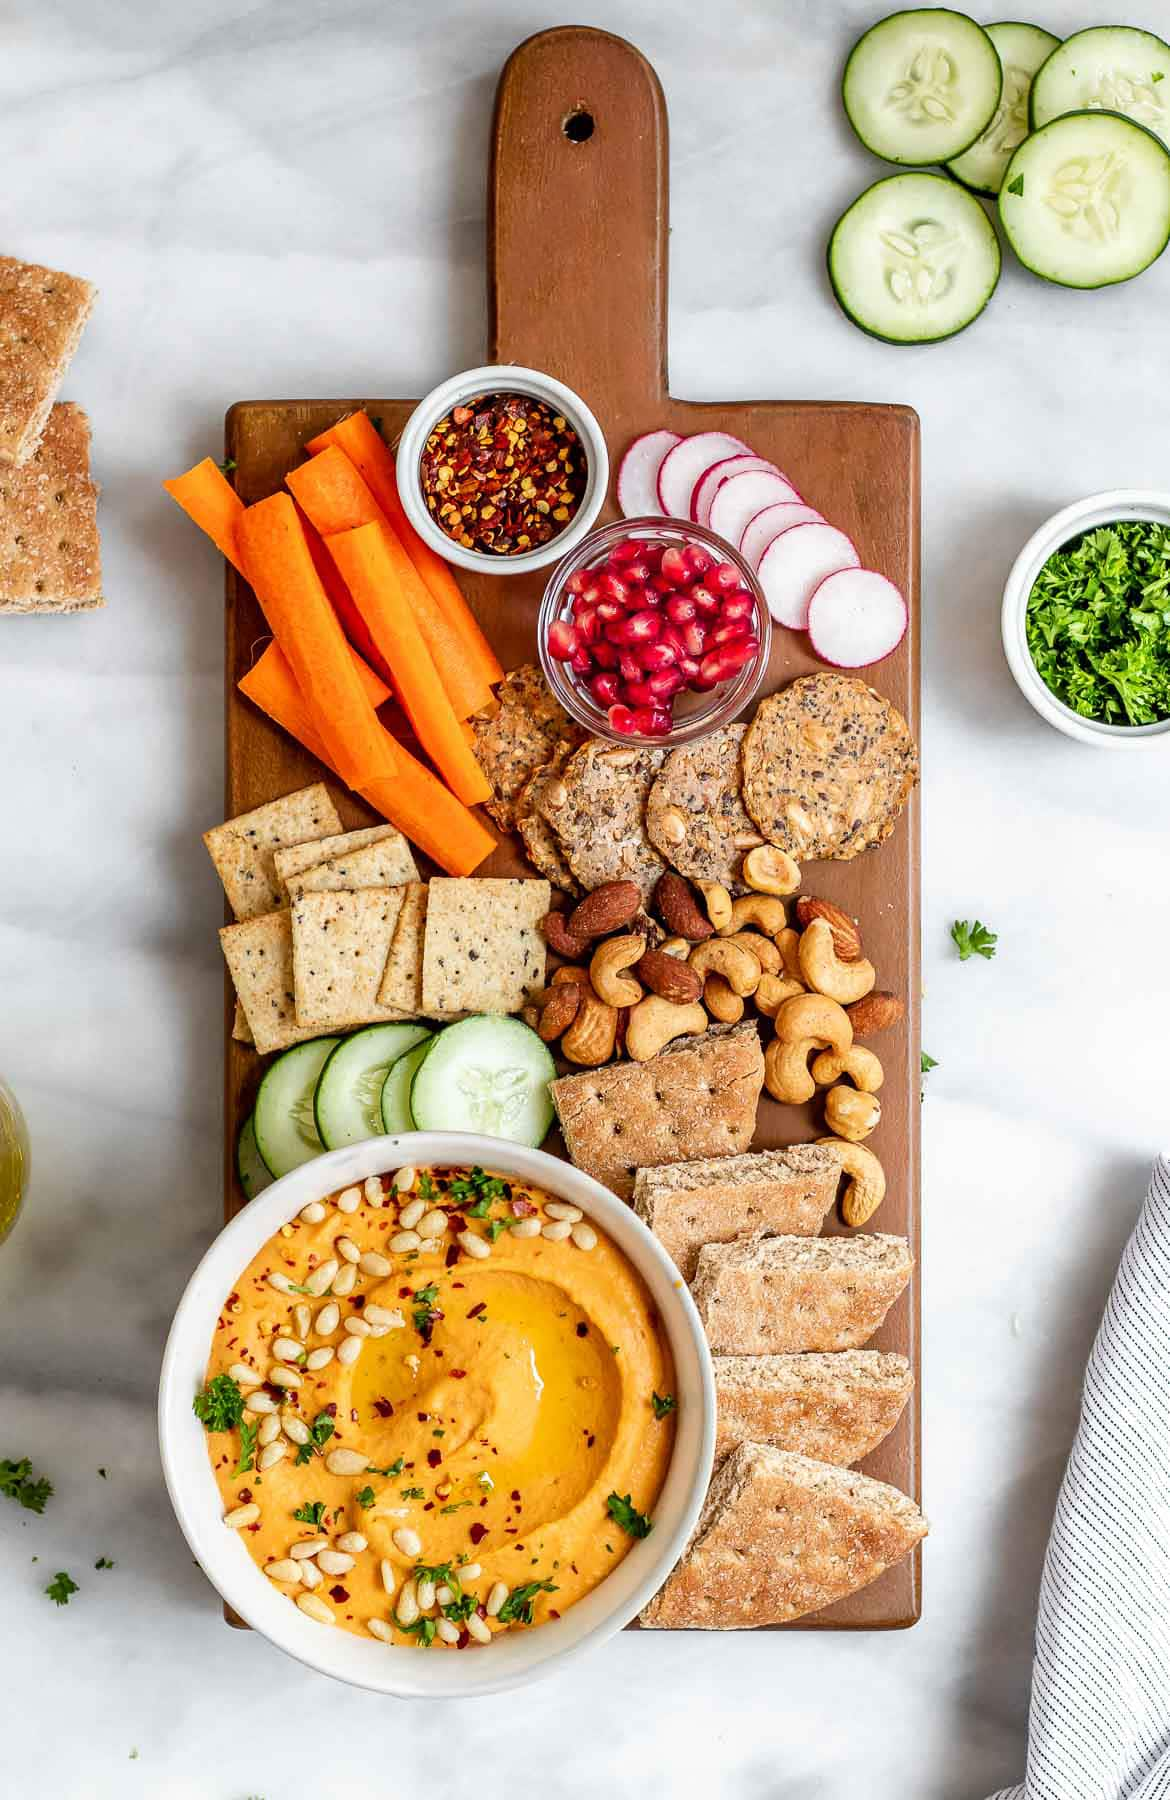 Cheese board with crackers, veggies, nuts and the roasted red pepper hummus.